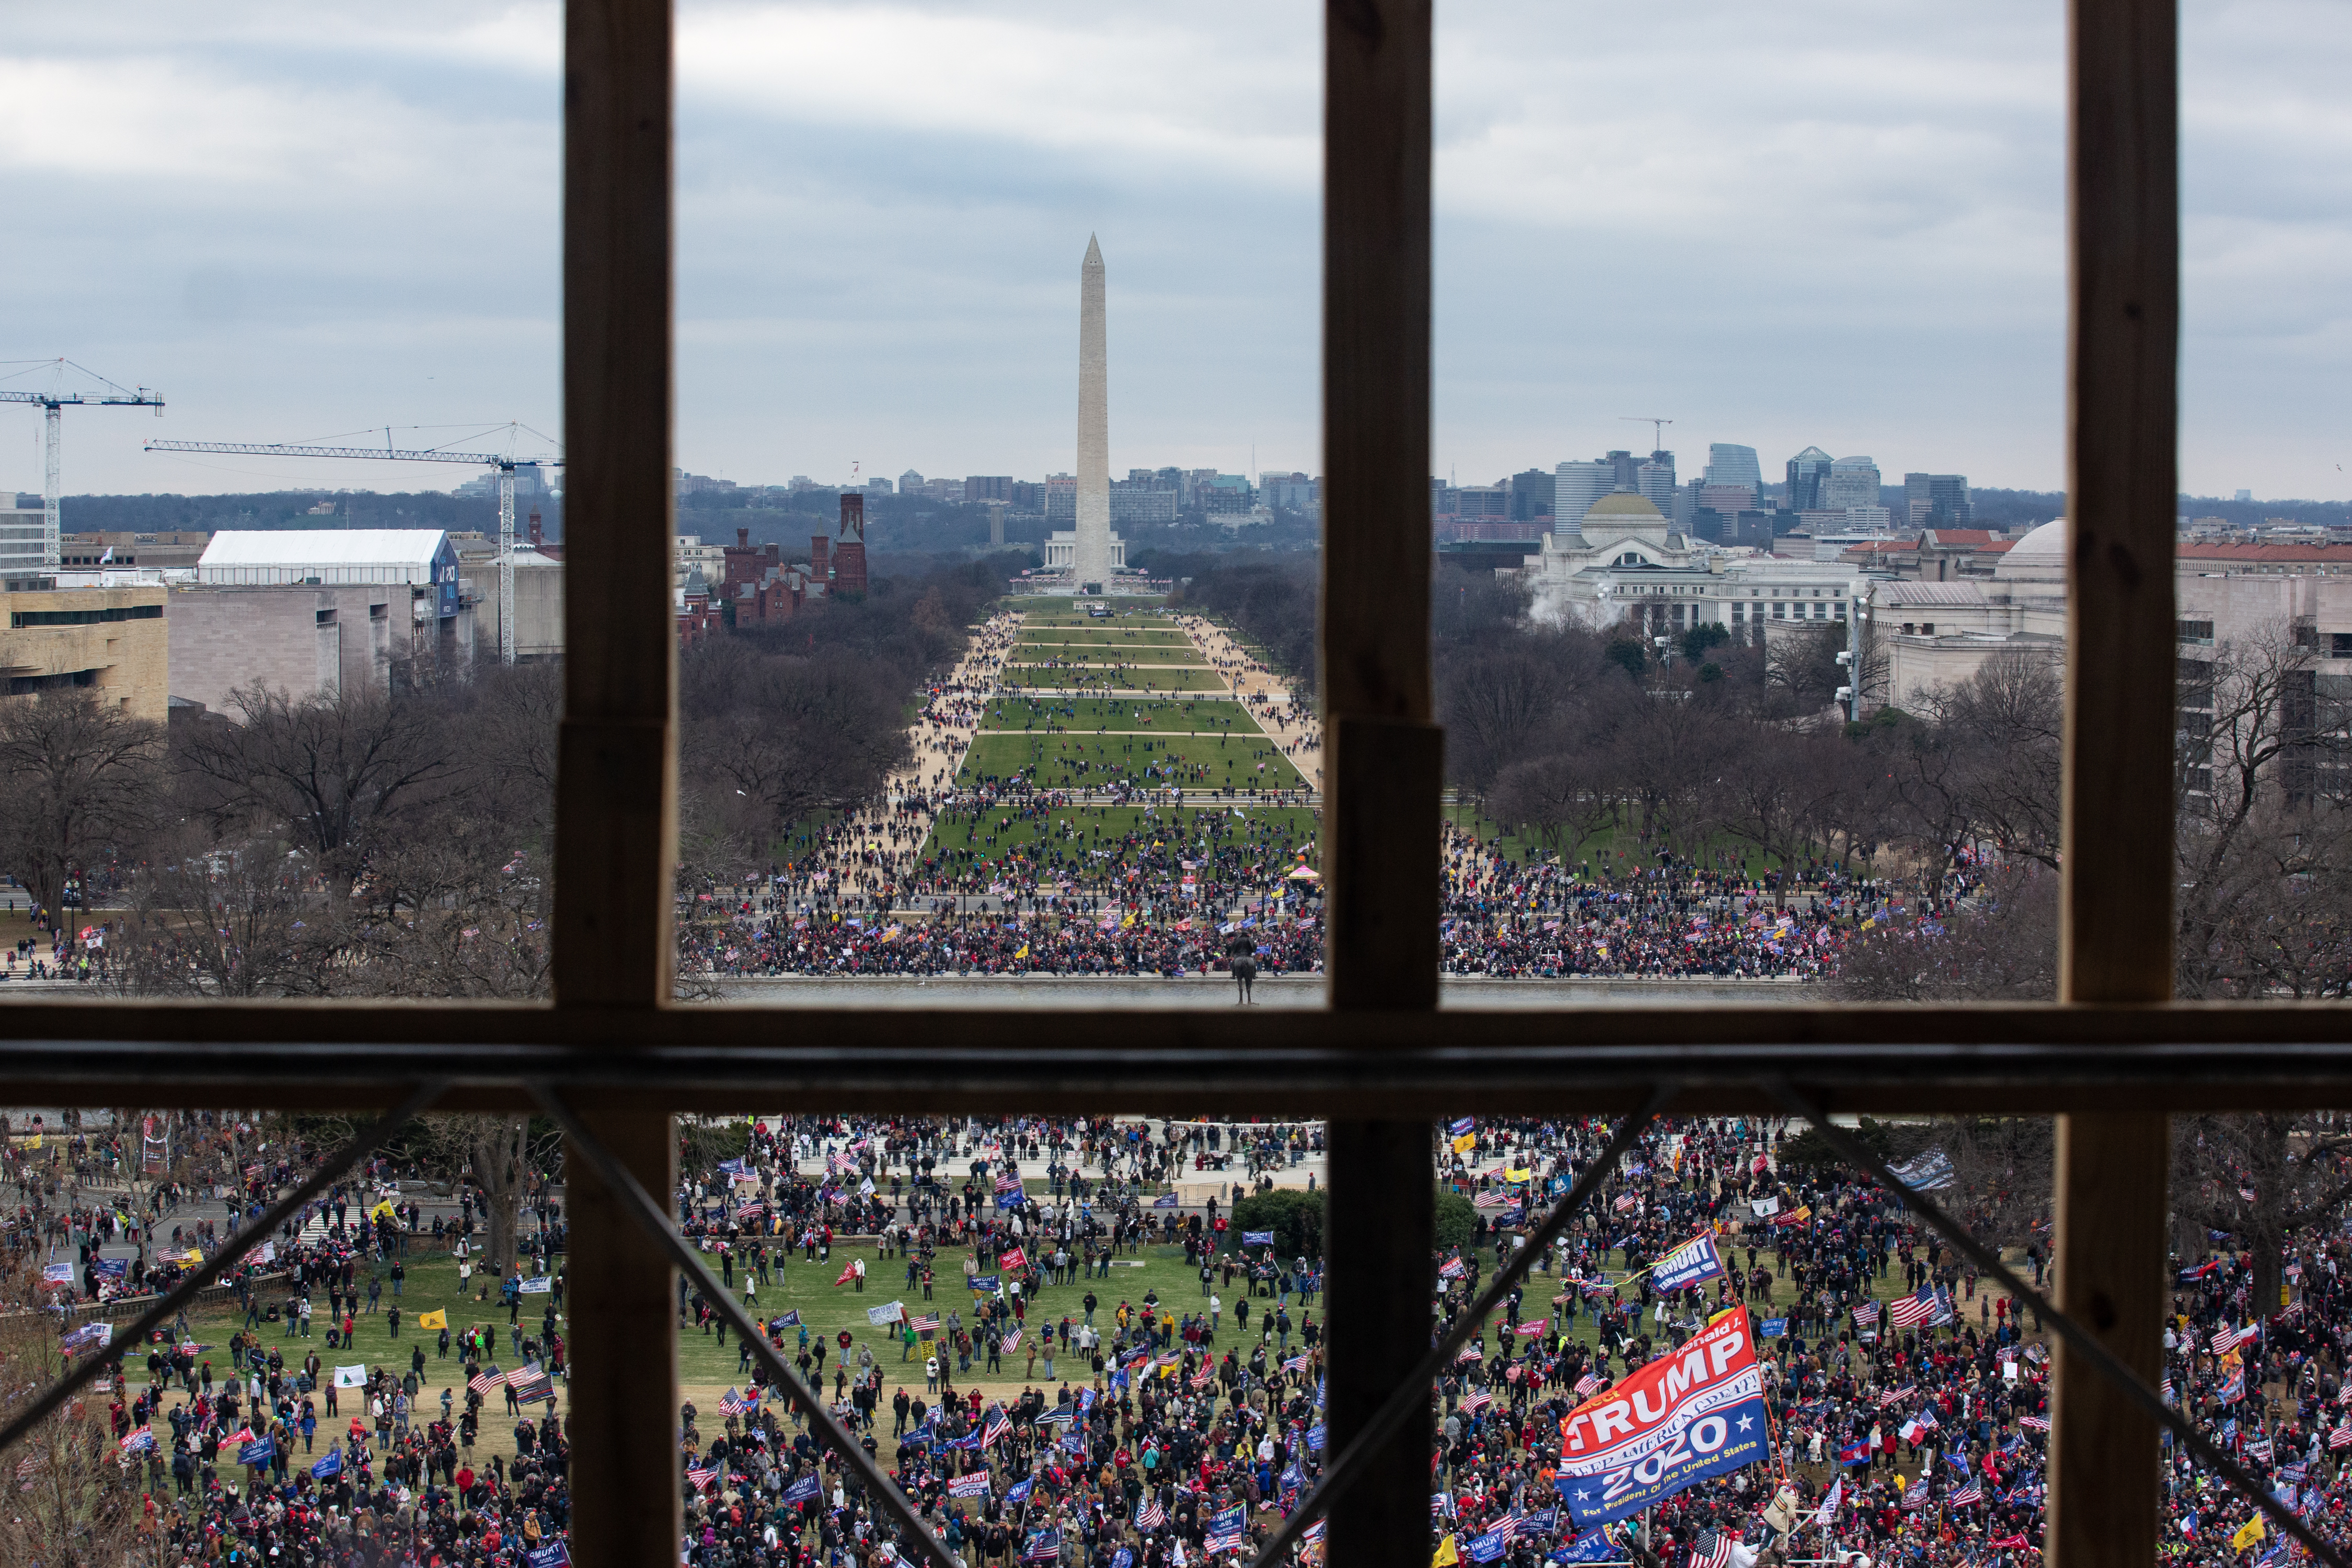 A crowd of Trump supporters gather outside the US Capitol on January 6 in Washington, DC.